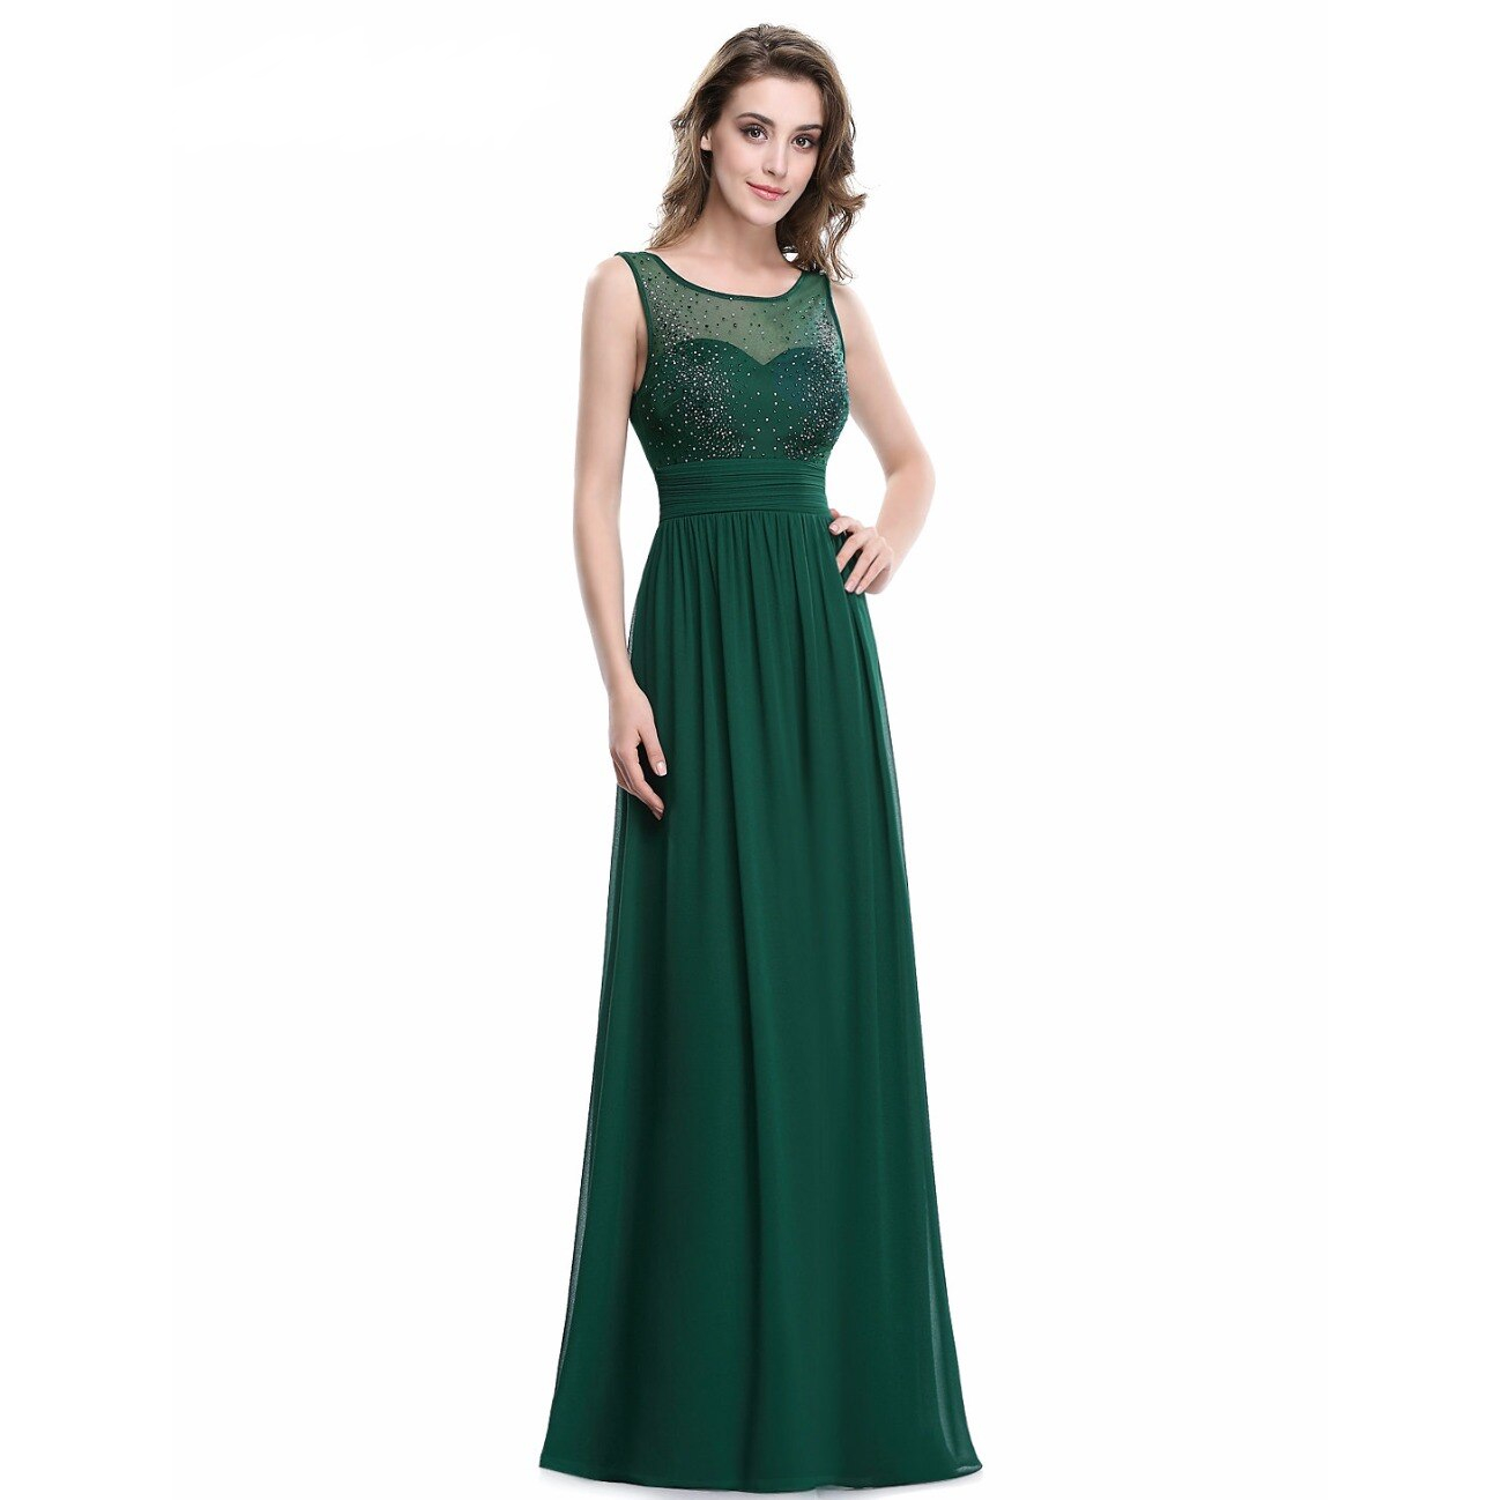 ​Long emerald green bridesmaid dress